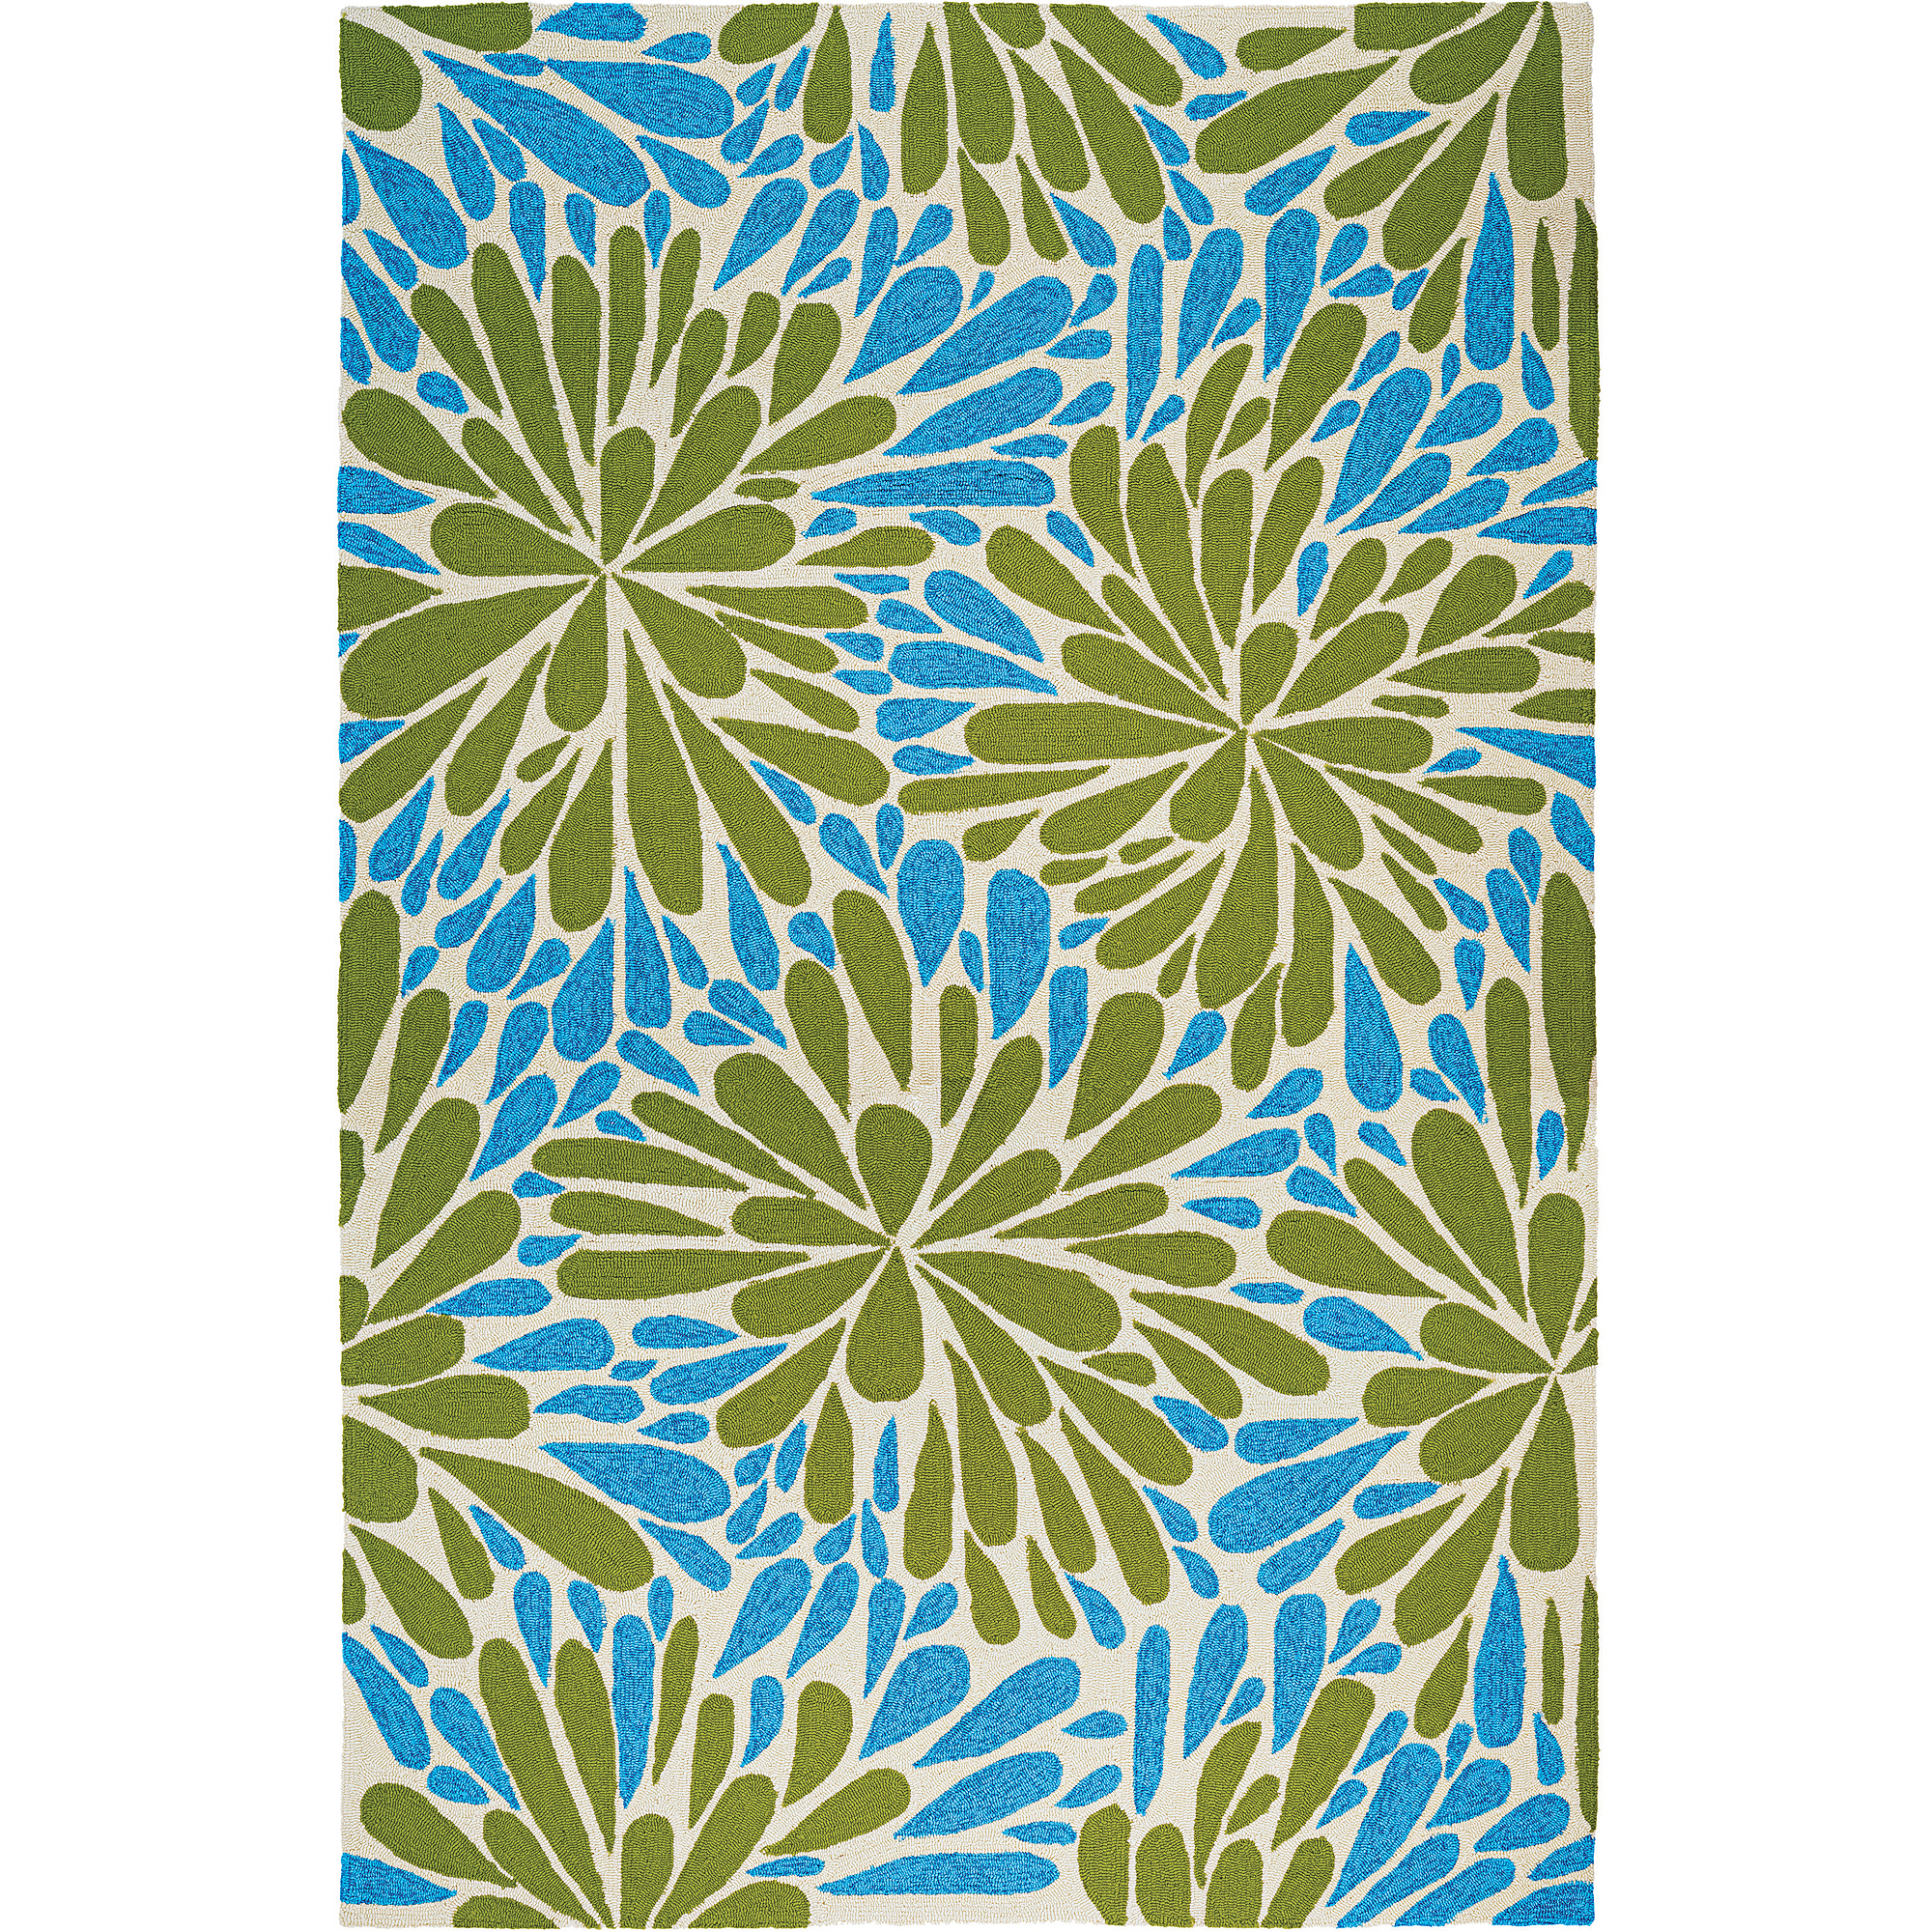 Couristan Covington Summer Siesta Rug, Sand/Multi-Colored